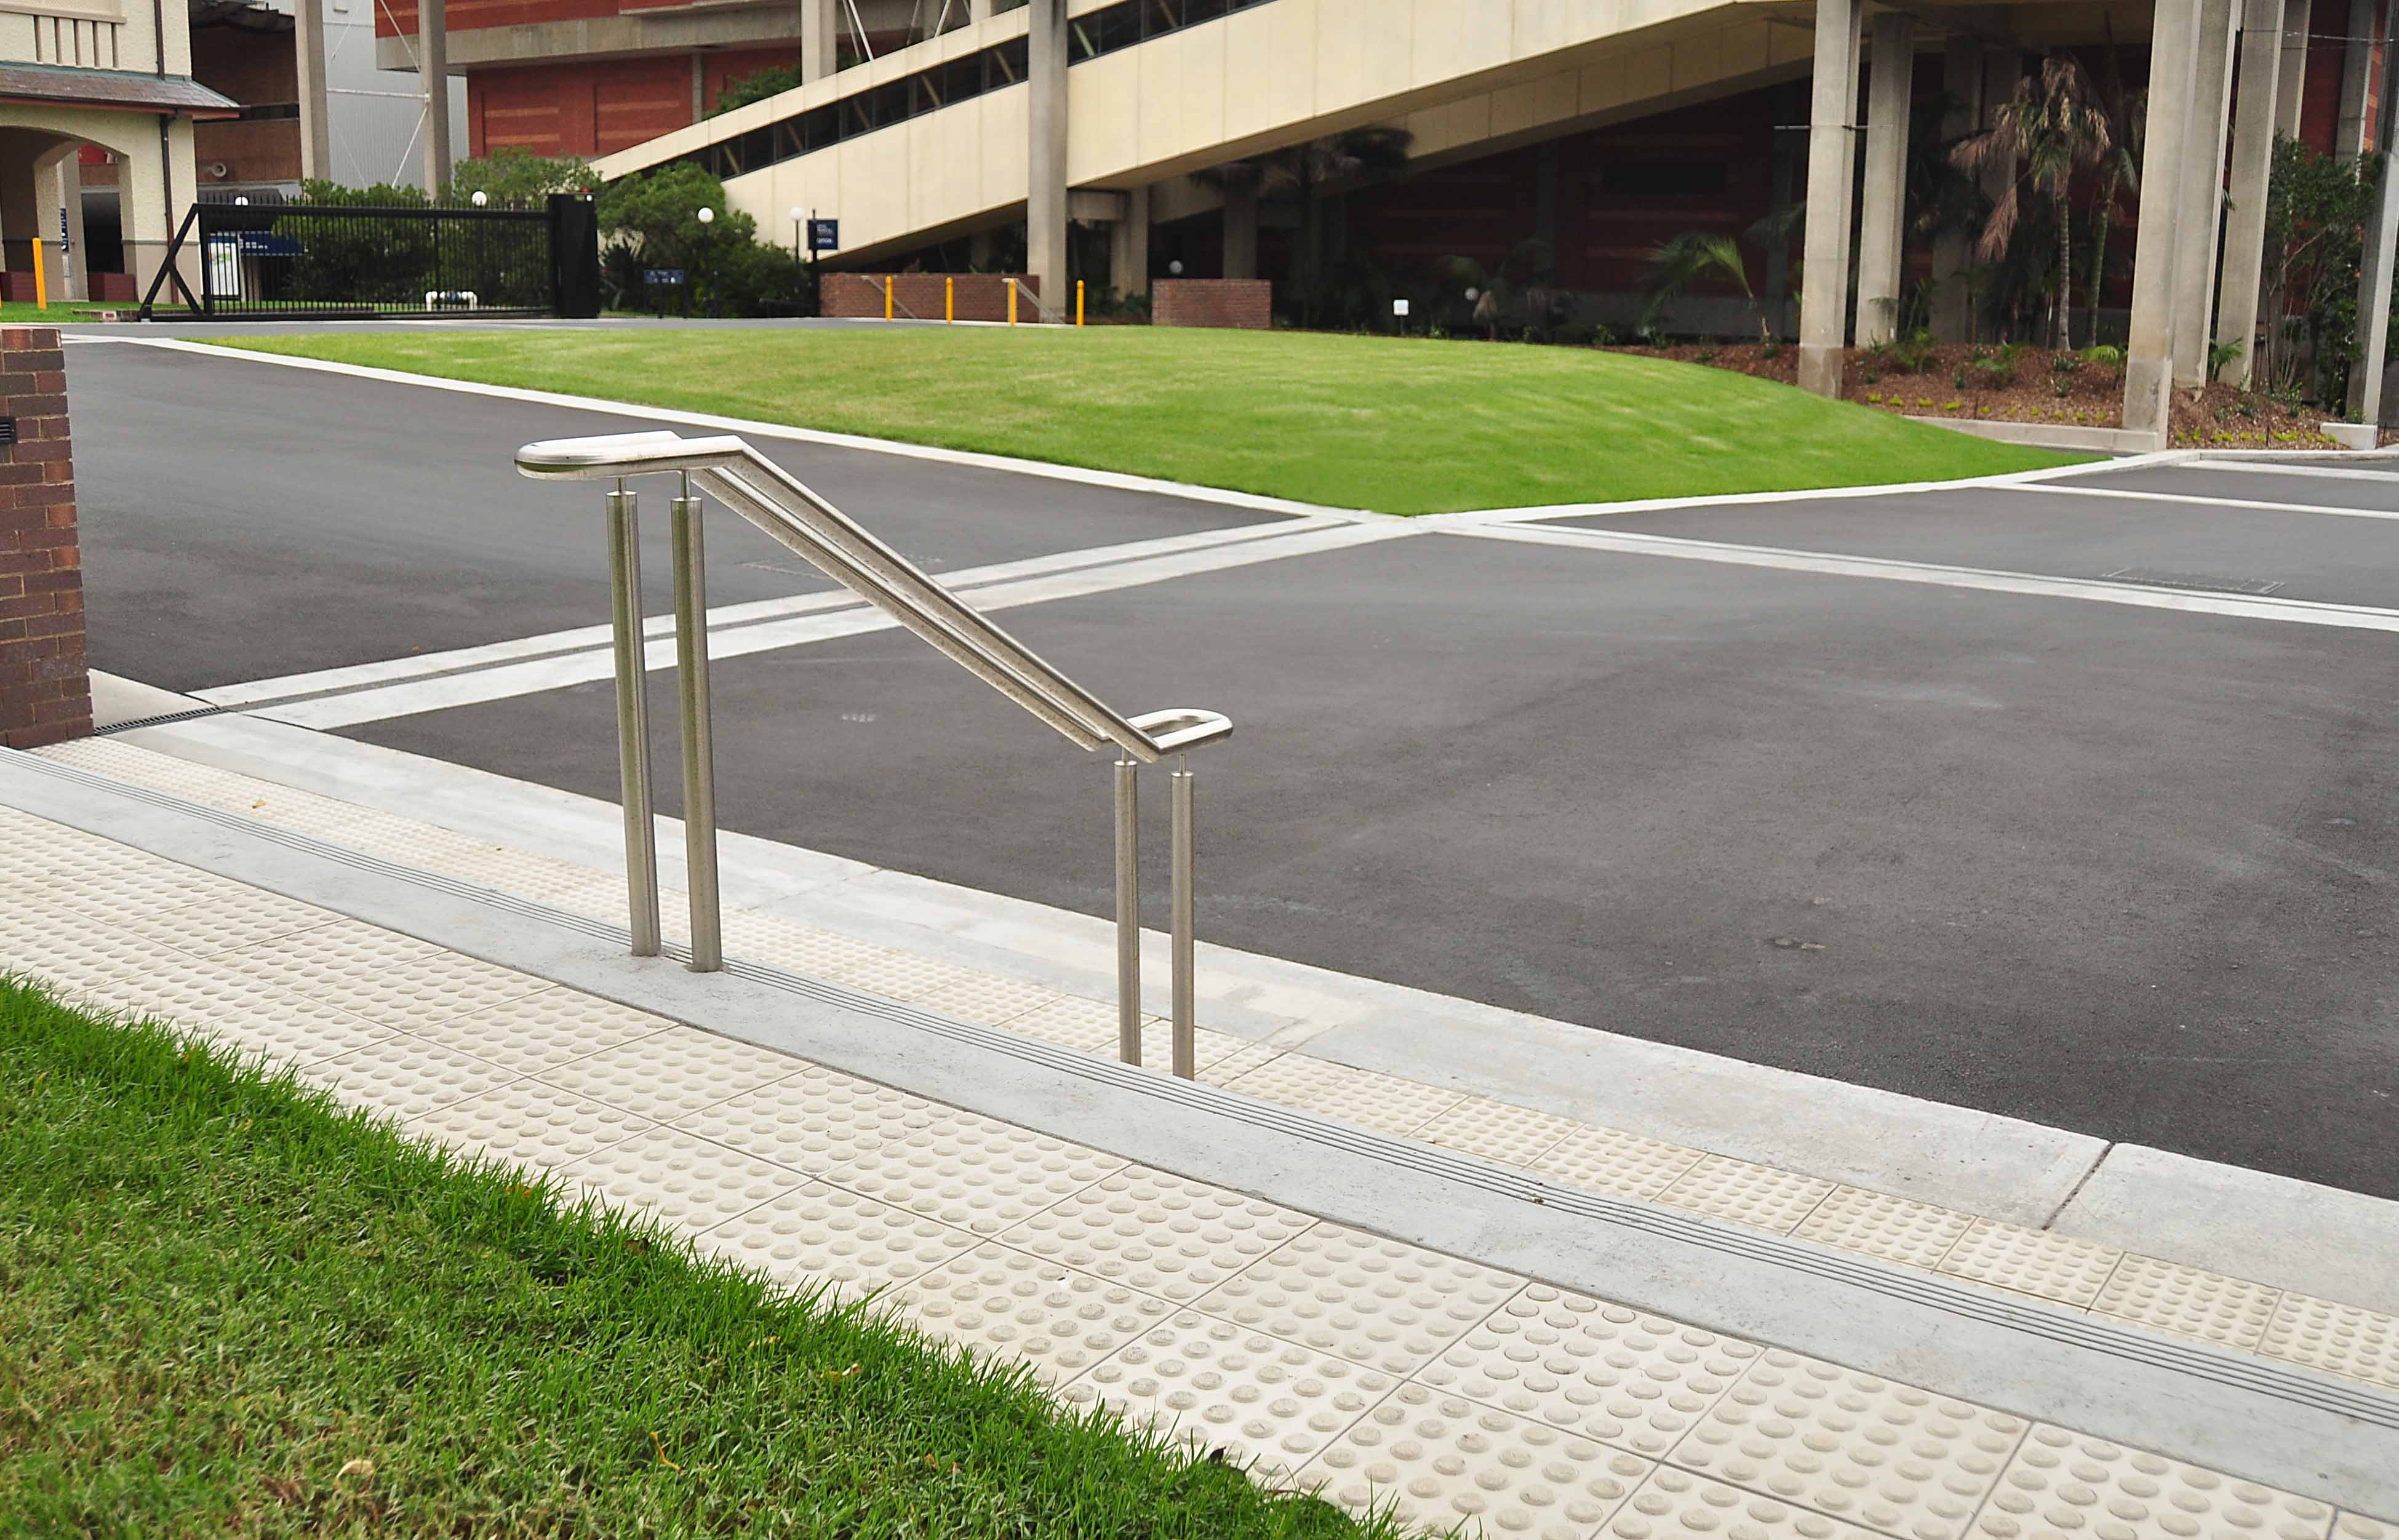 Royal Randwick Racecourse Tactile Pavers